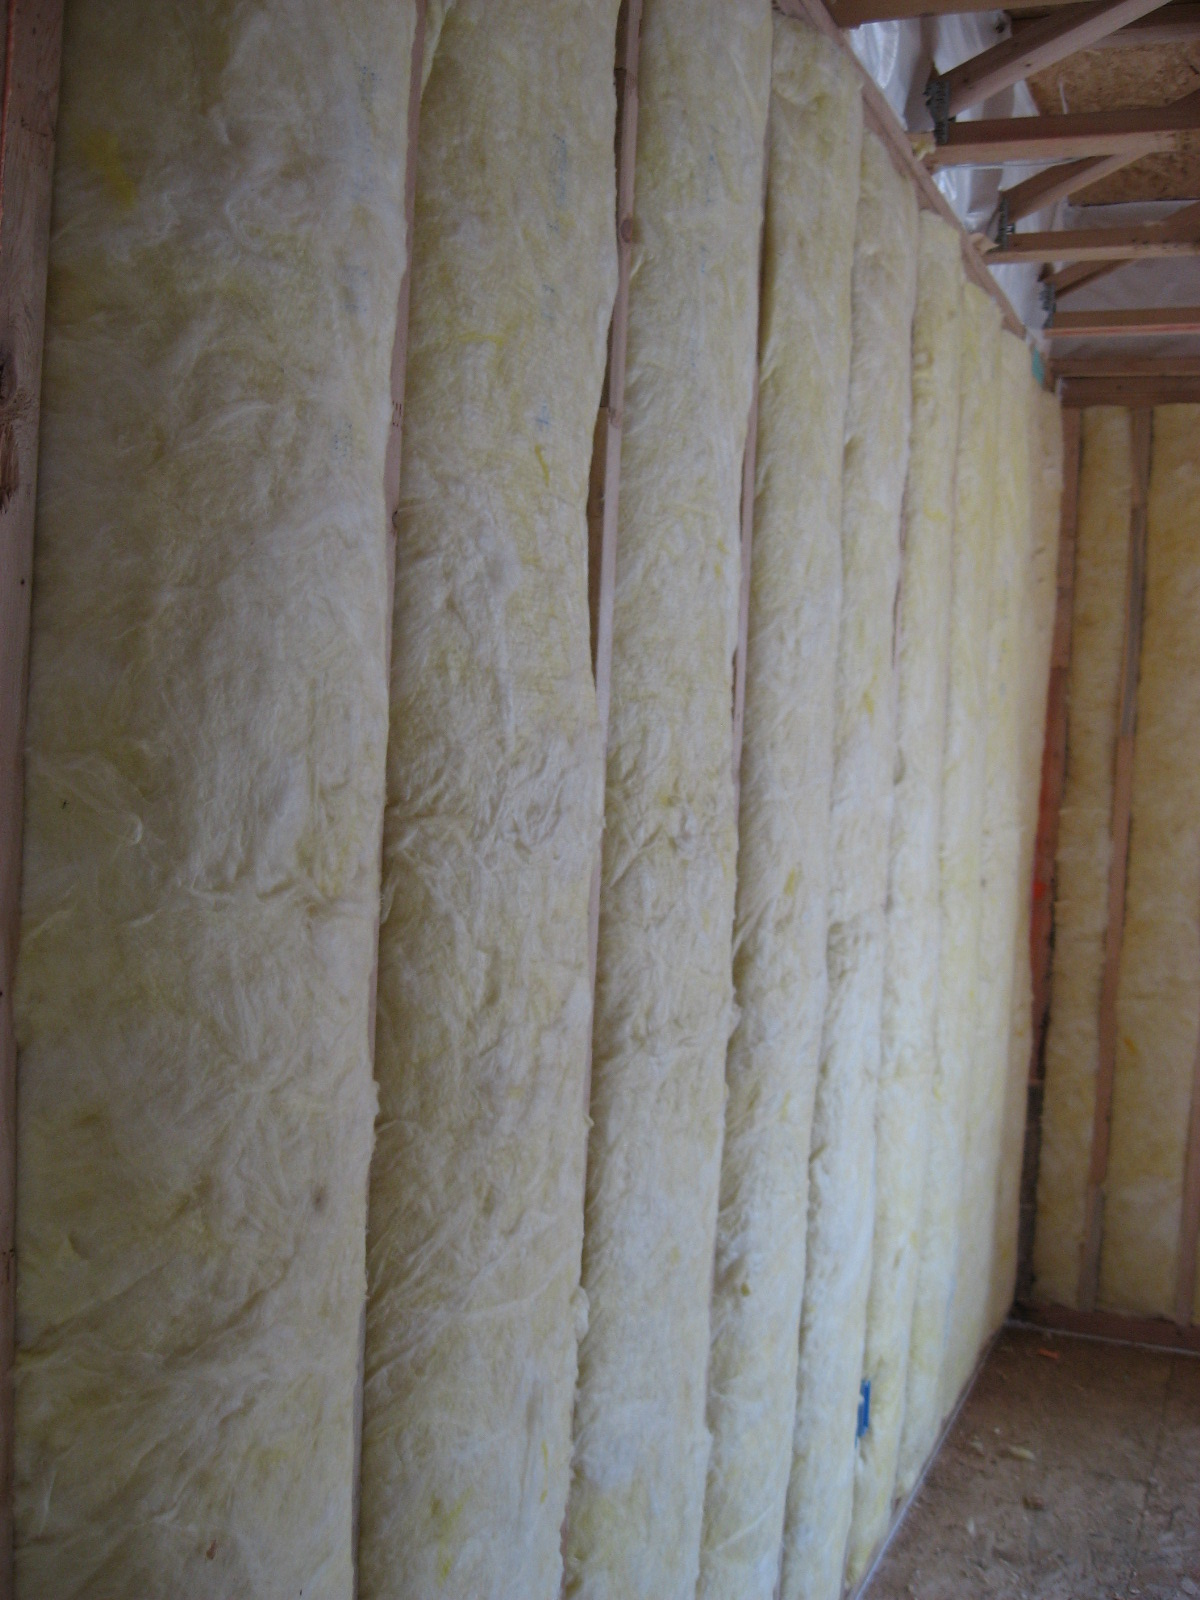 Insulation installation resnet grade 1 building for High density fiberglass batt insulation